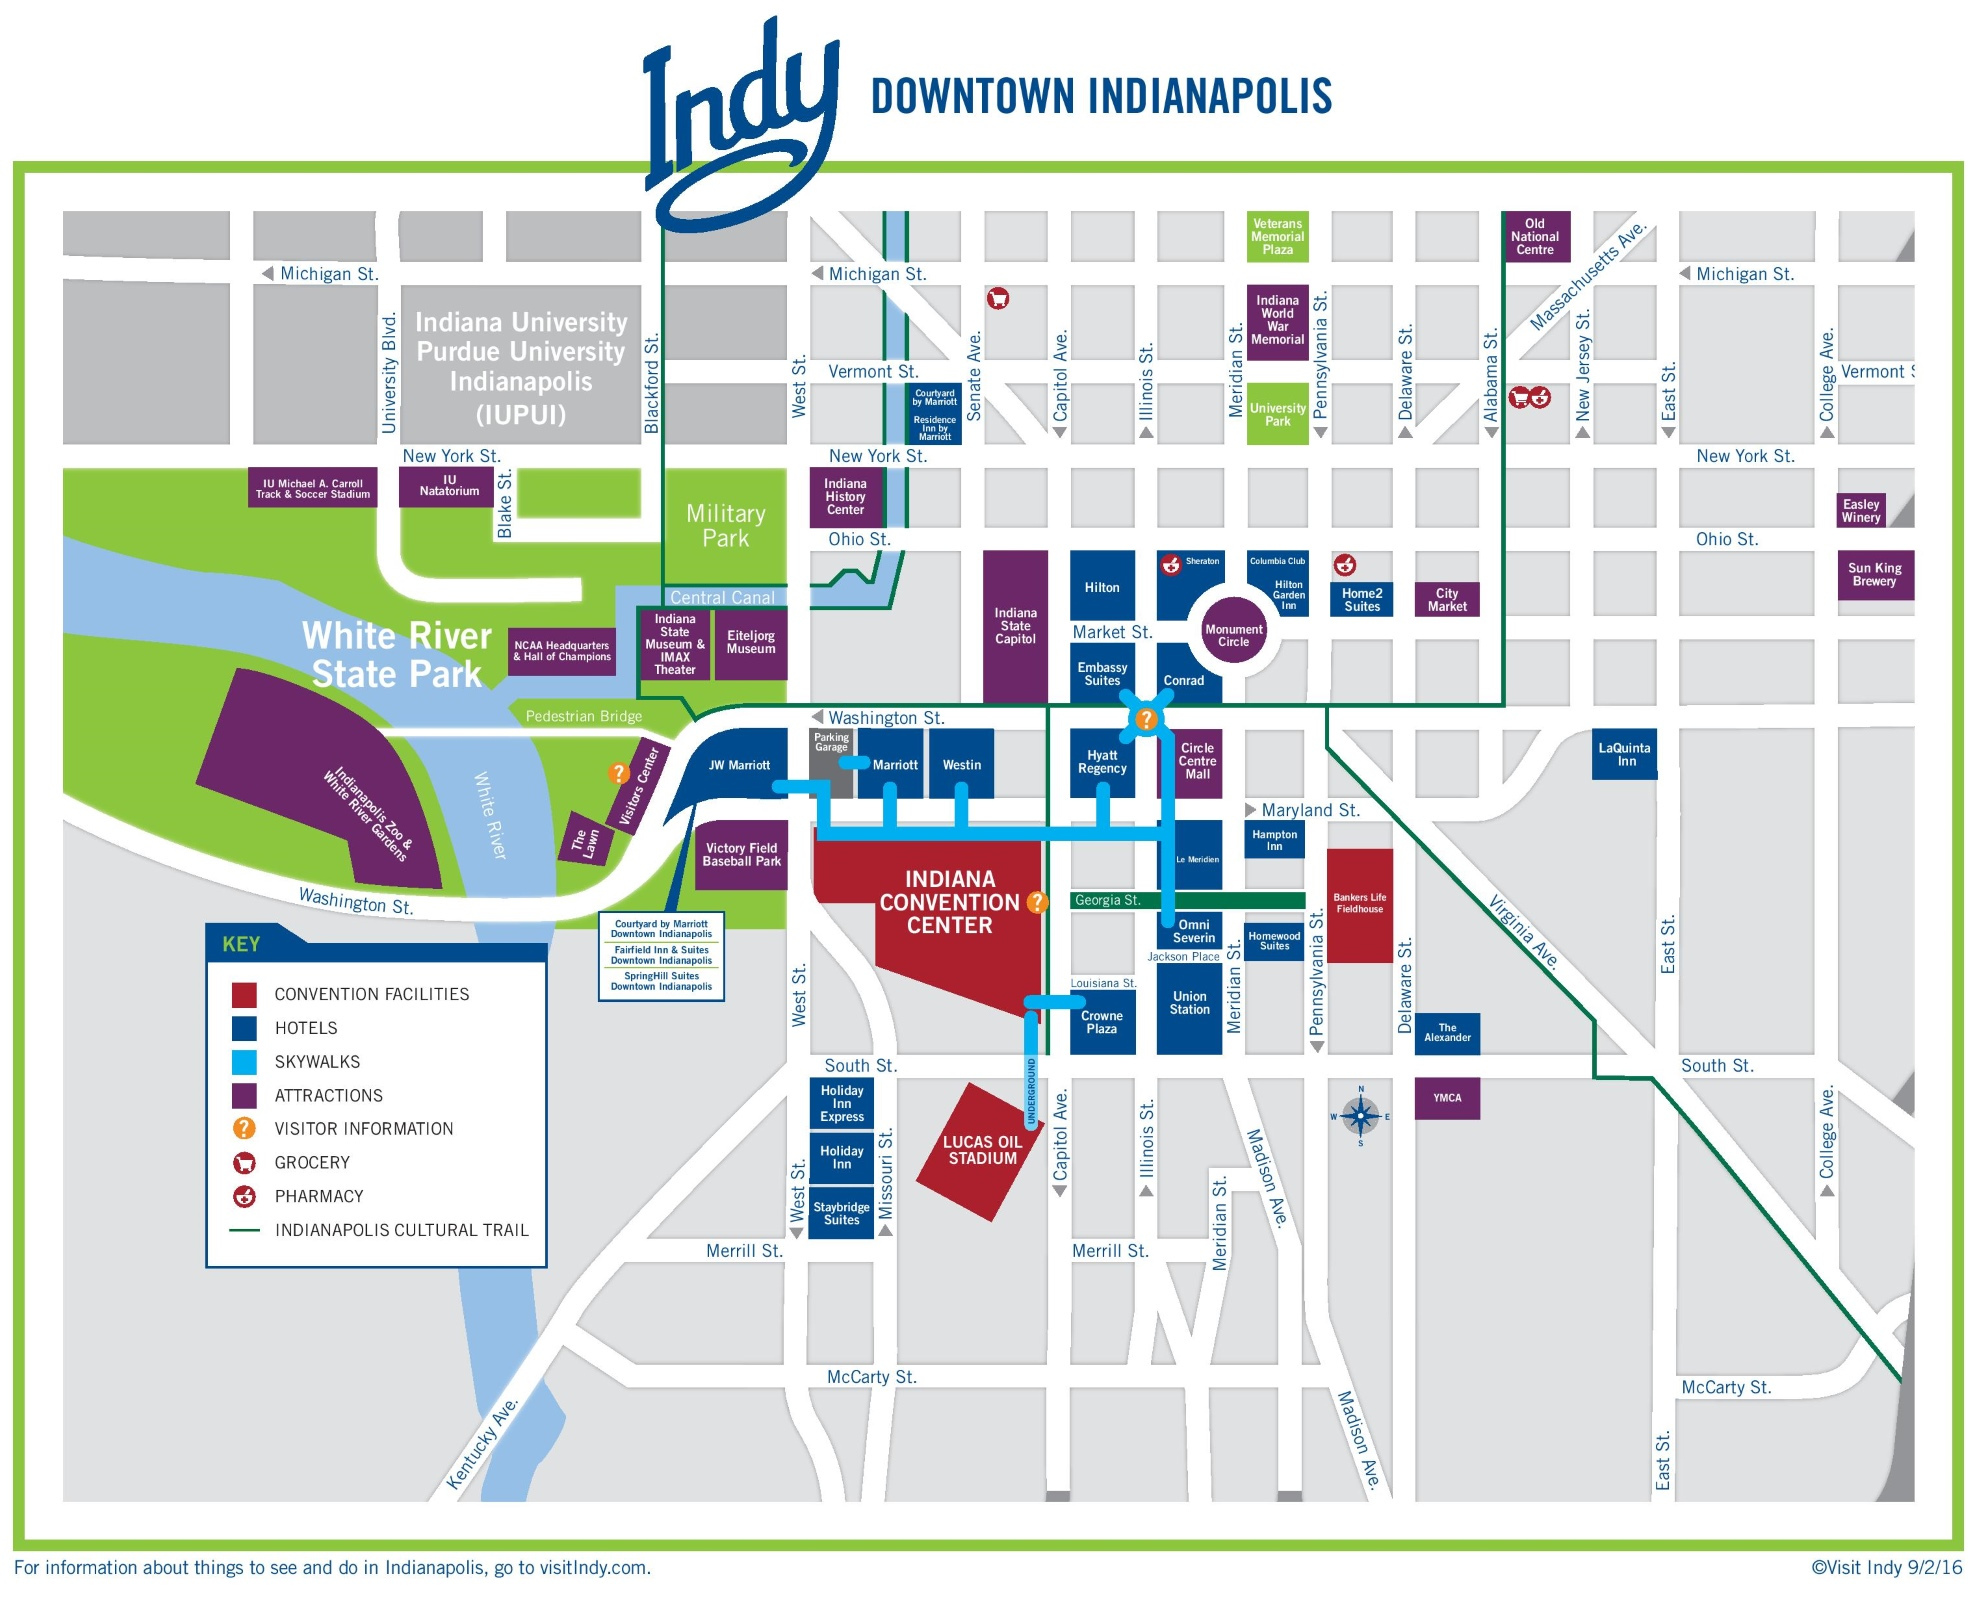 Downtown Indianapolis Hotels Map | 2018 World's Best Hotels on disneyland resort hotel map, downtown indianapolis indiana, indiana convention center hotel map, florida hotel map, international drive hotel map, midtown atlanta hotel map, miami hotel map, contemporary hotel map, restaurants downtown denver map, indy city map, linq hotel map, oklahoma city downtown street map, panama city beach hotel map, indy skywalk map, kansas city downtown hotels map, downtown decatur illinois, disney resort hotel map, chicago hotel map, downtown indy restaurants, dubai hotel map,